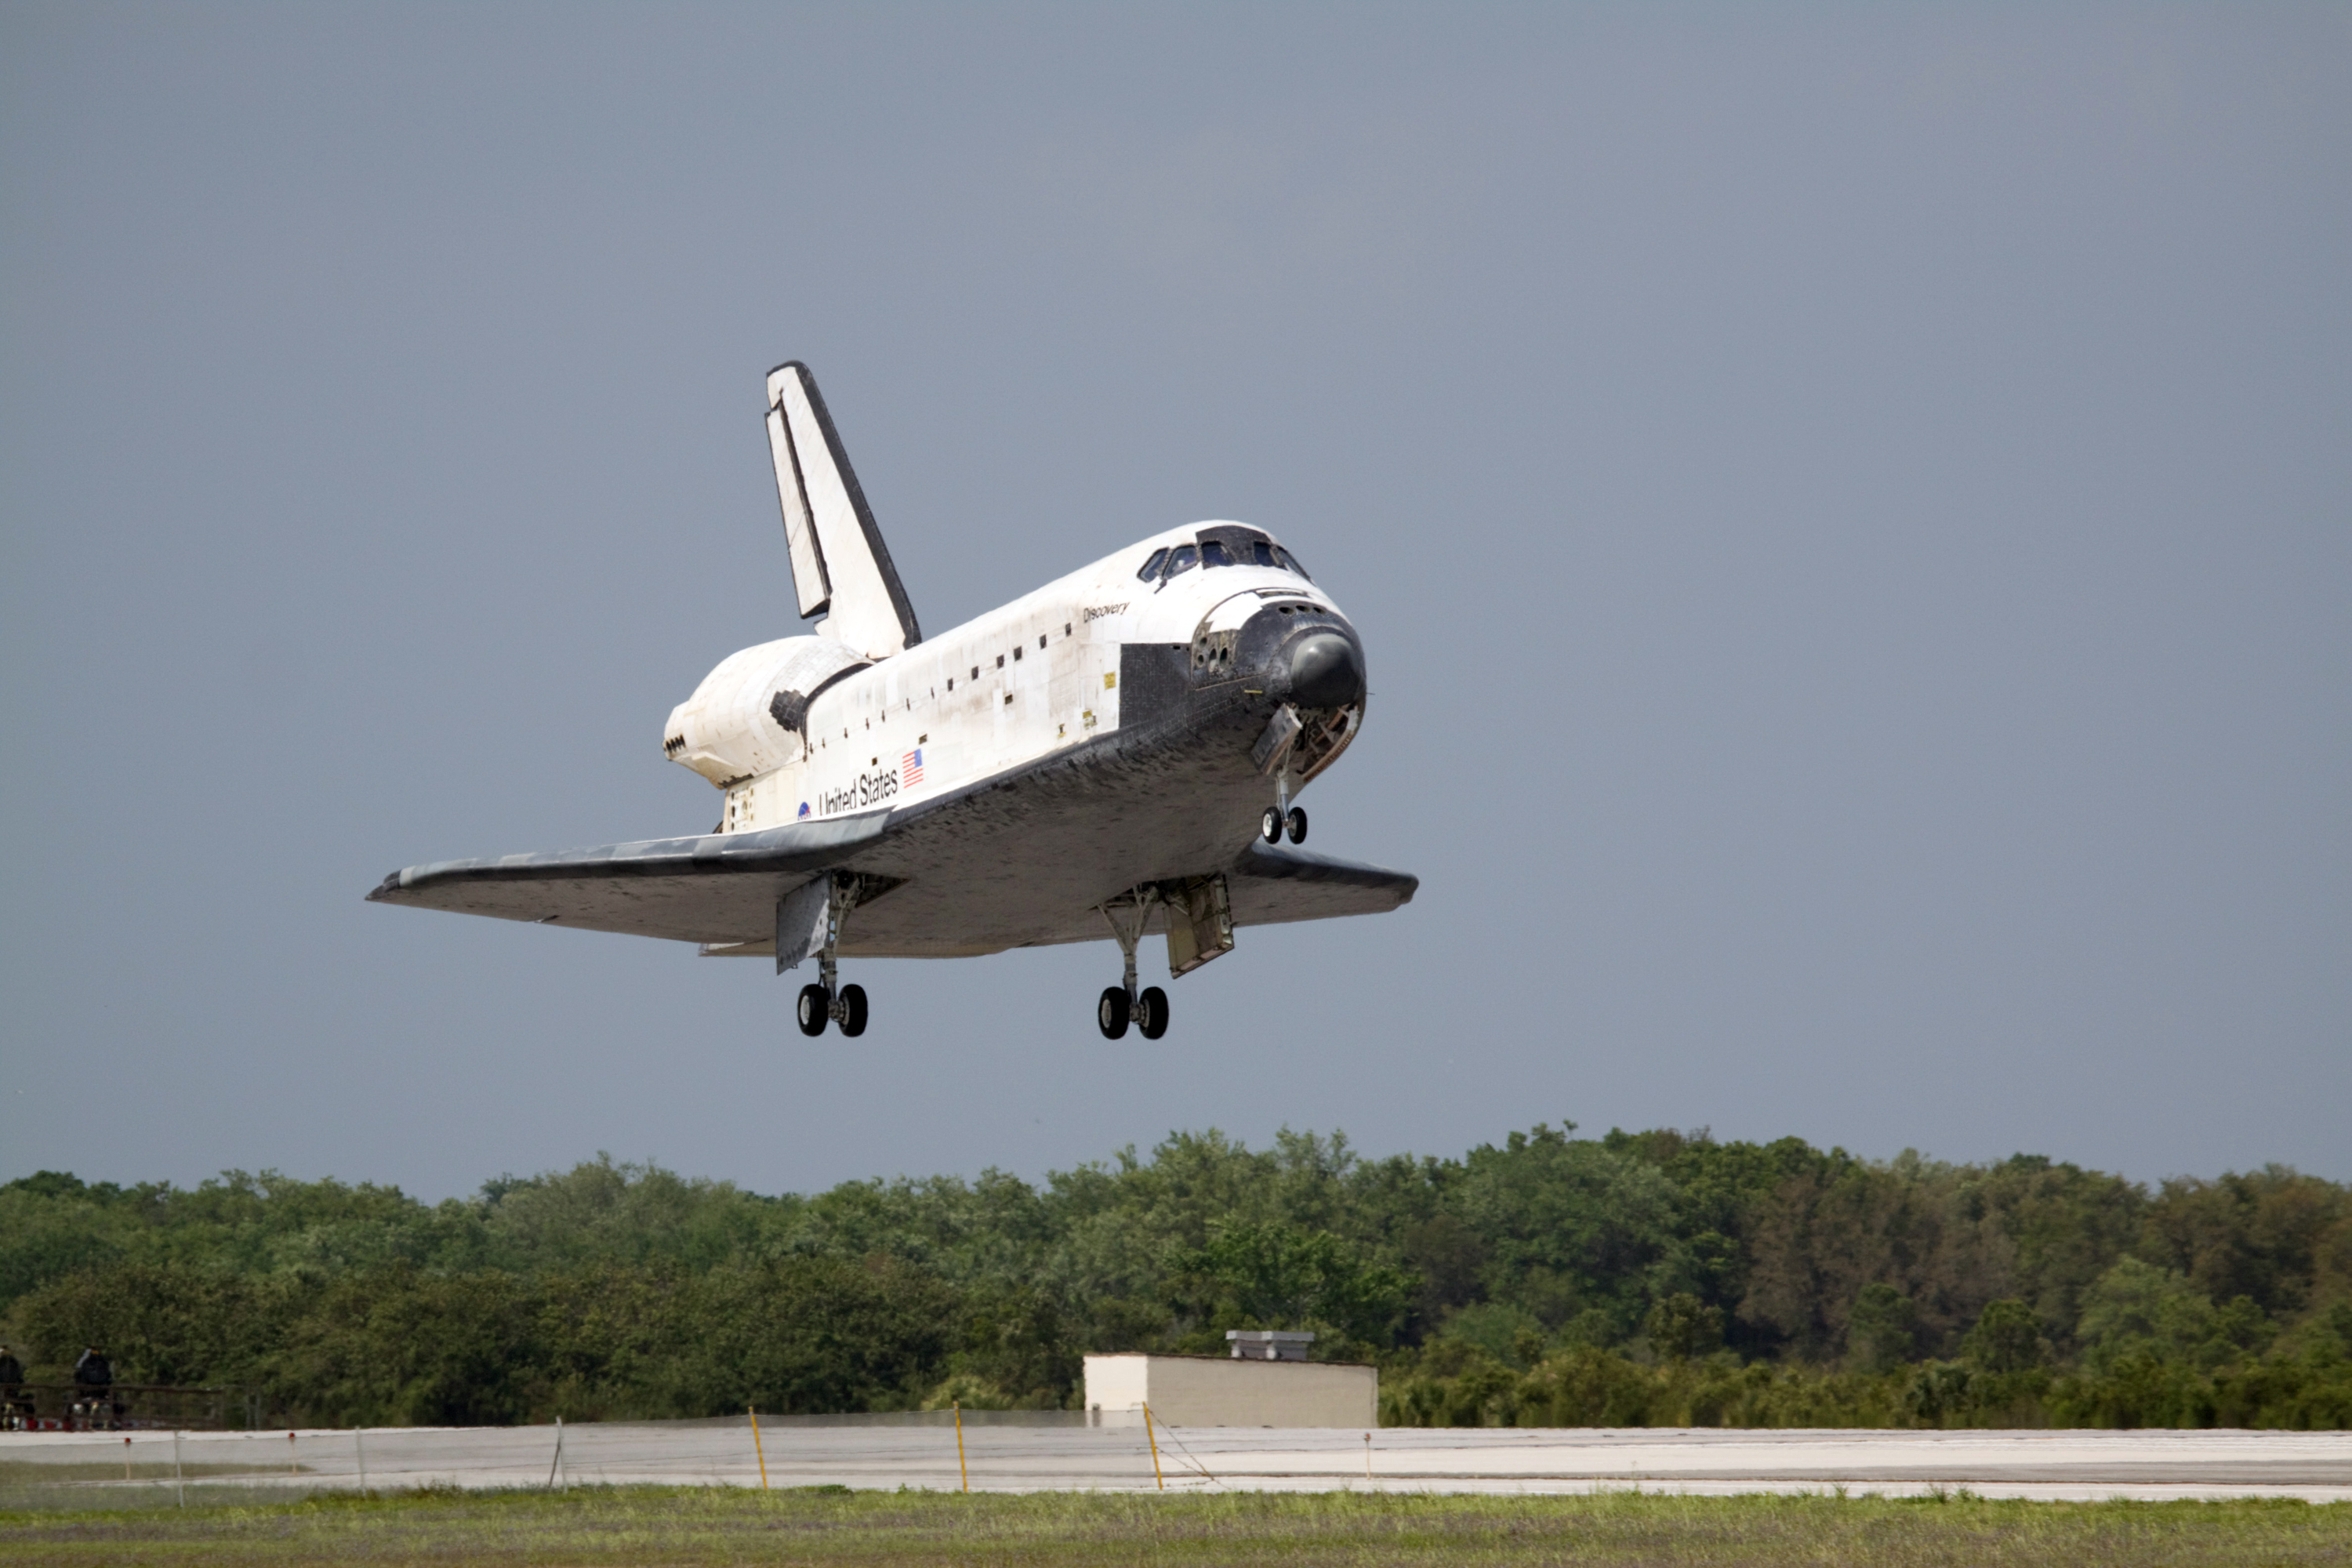 worst space shuttle landing - photo #26